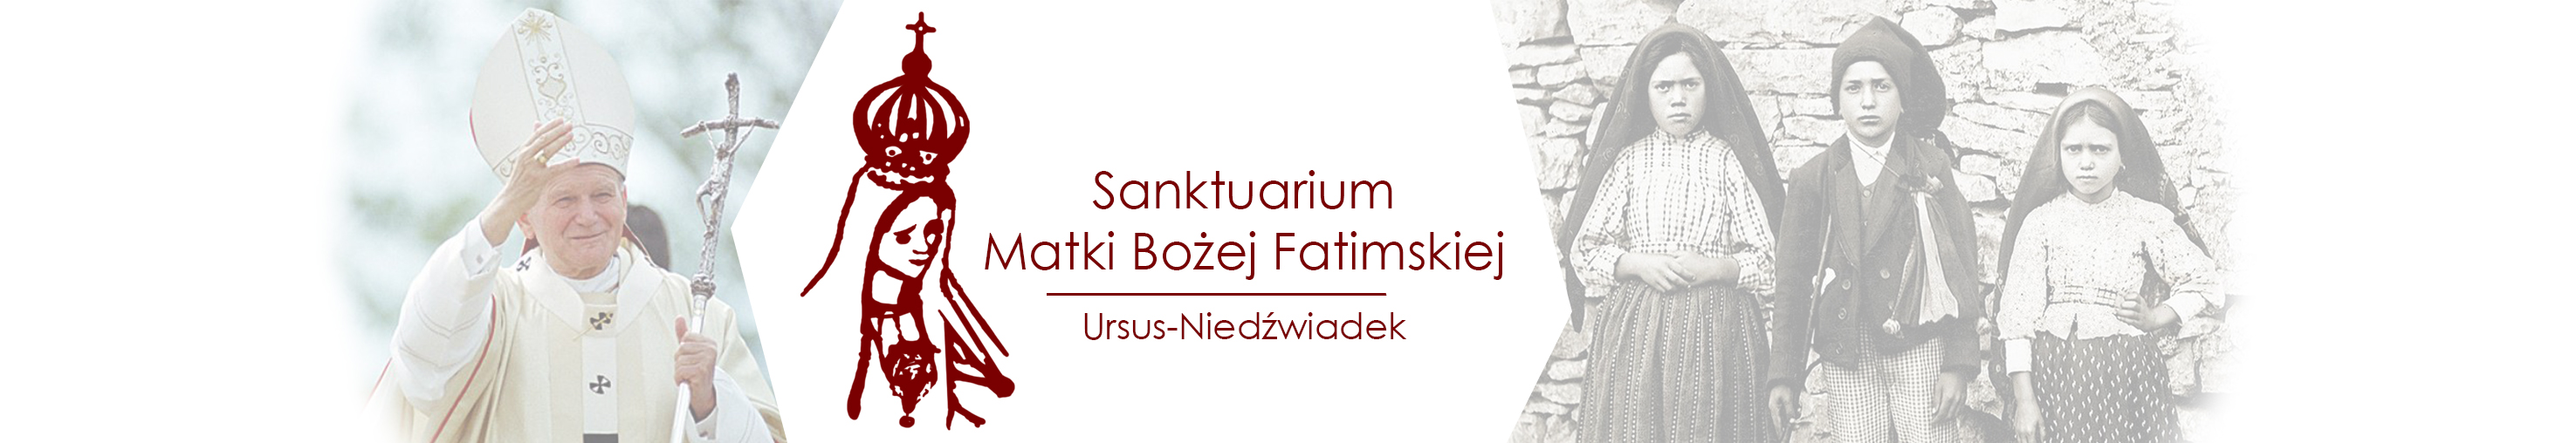 Sanktuarium Matki Bożej Fatimskiej w Warszawie